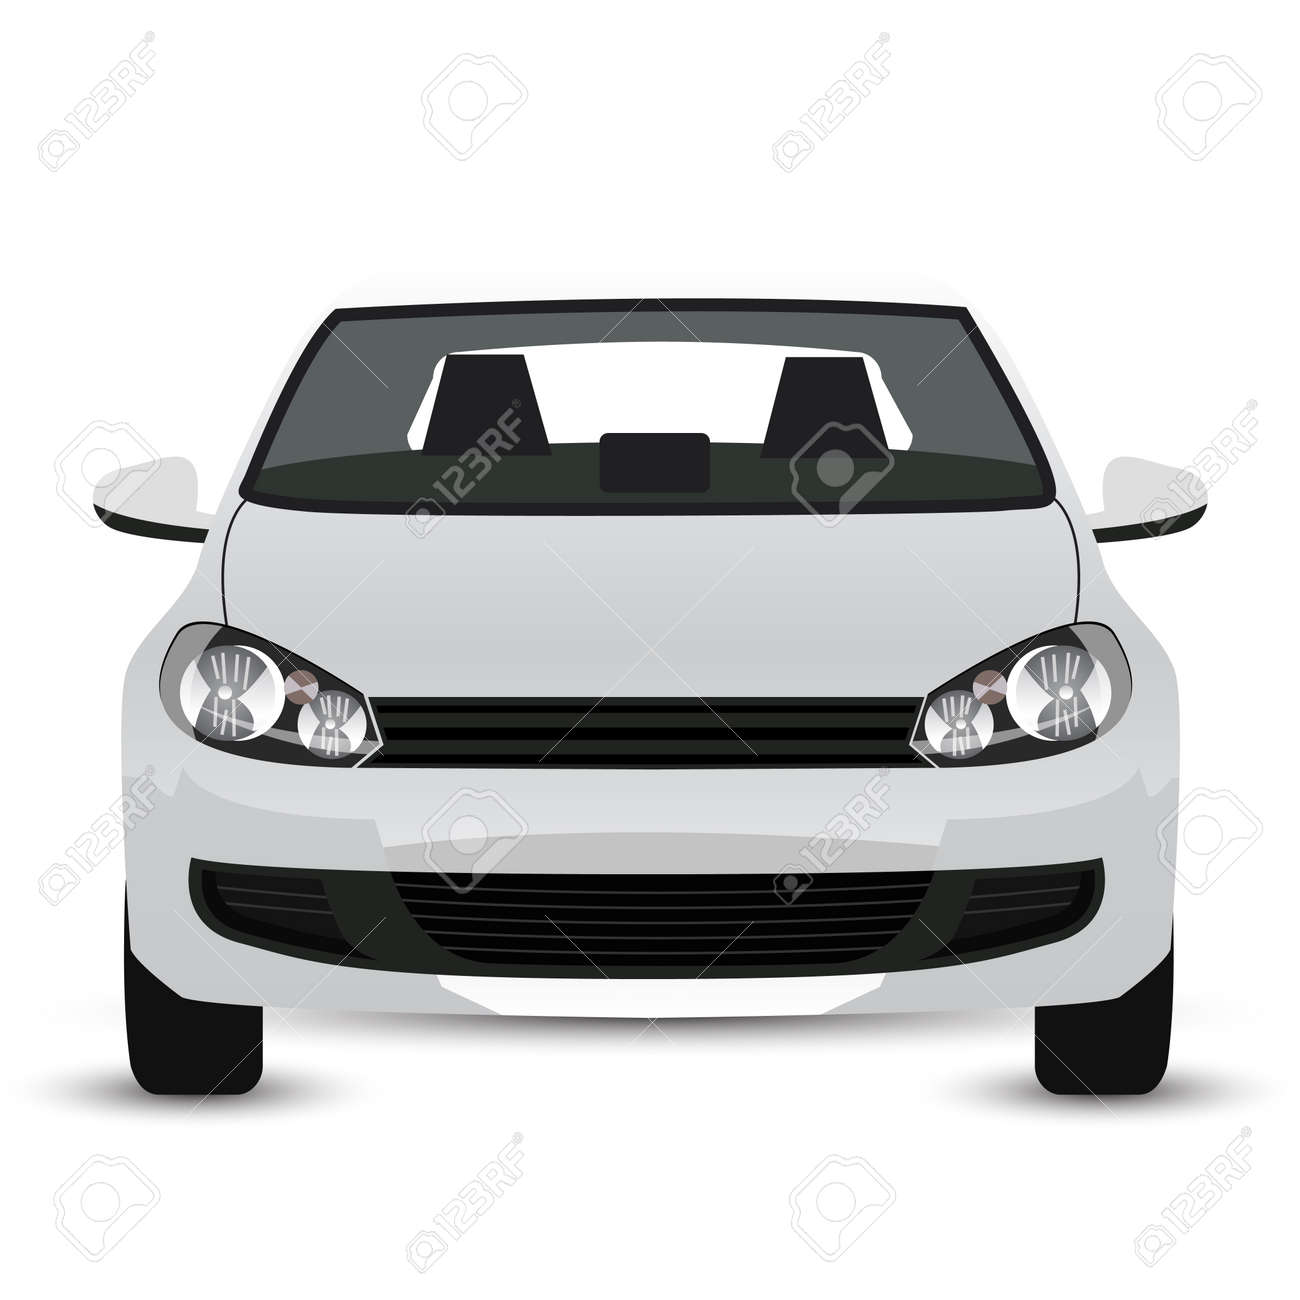 White Car - Front View Royalty Free Cliparts, Vectors, And Stock ...